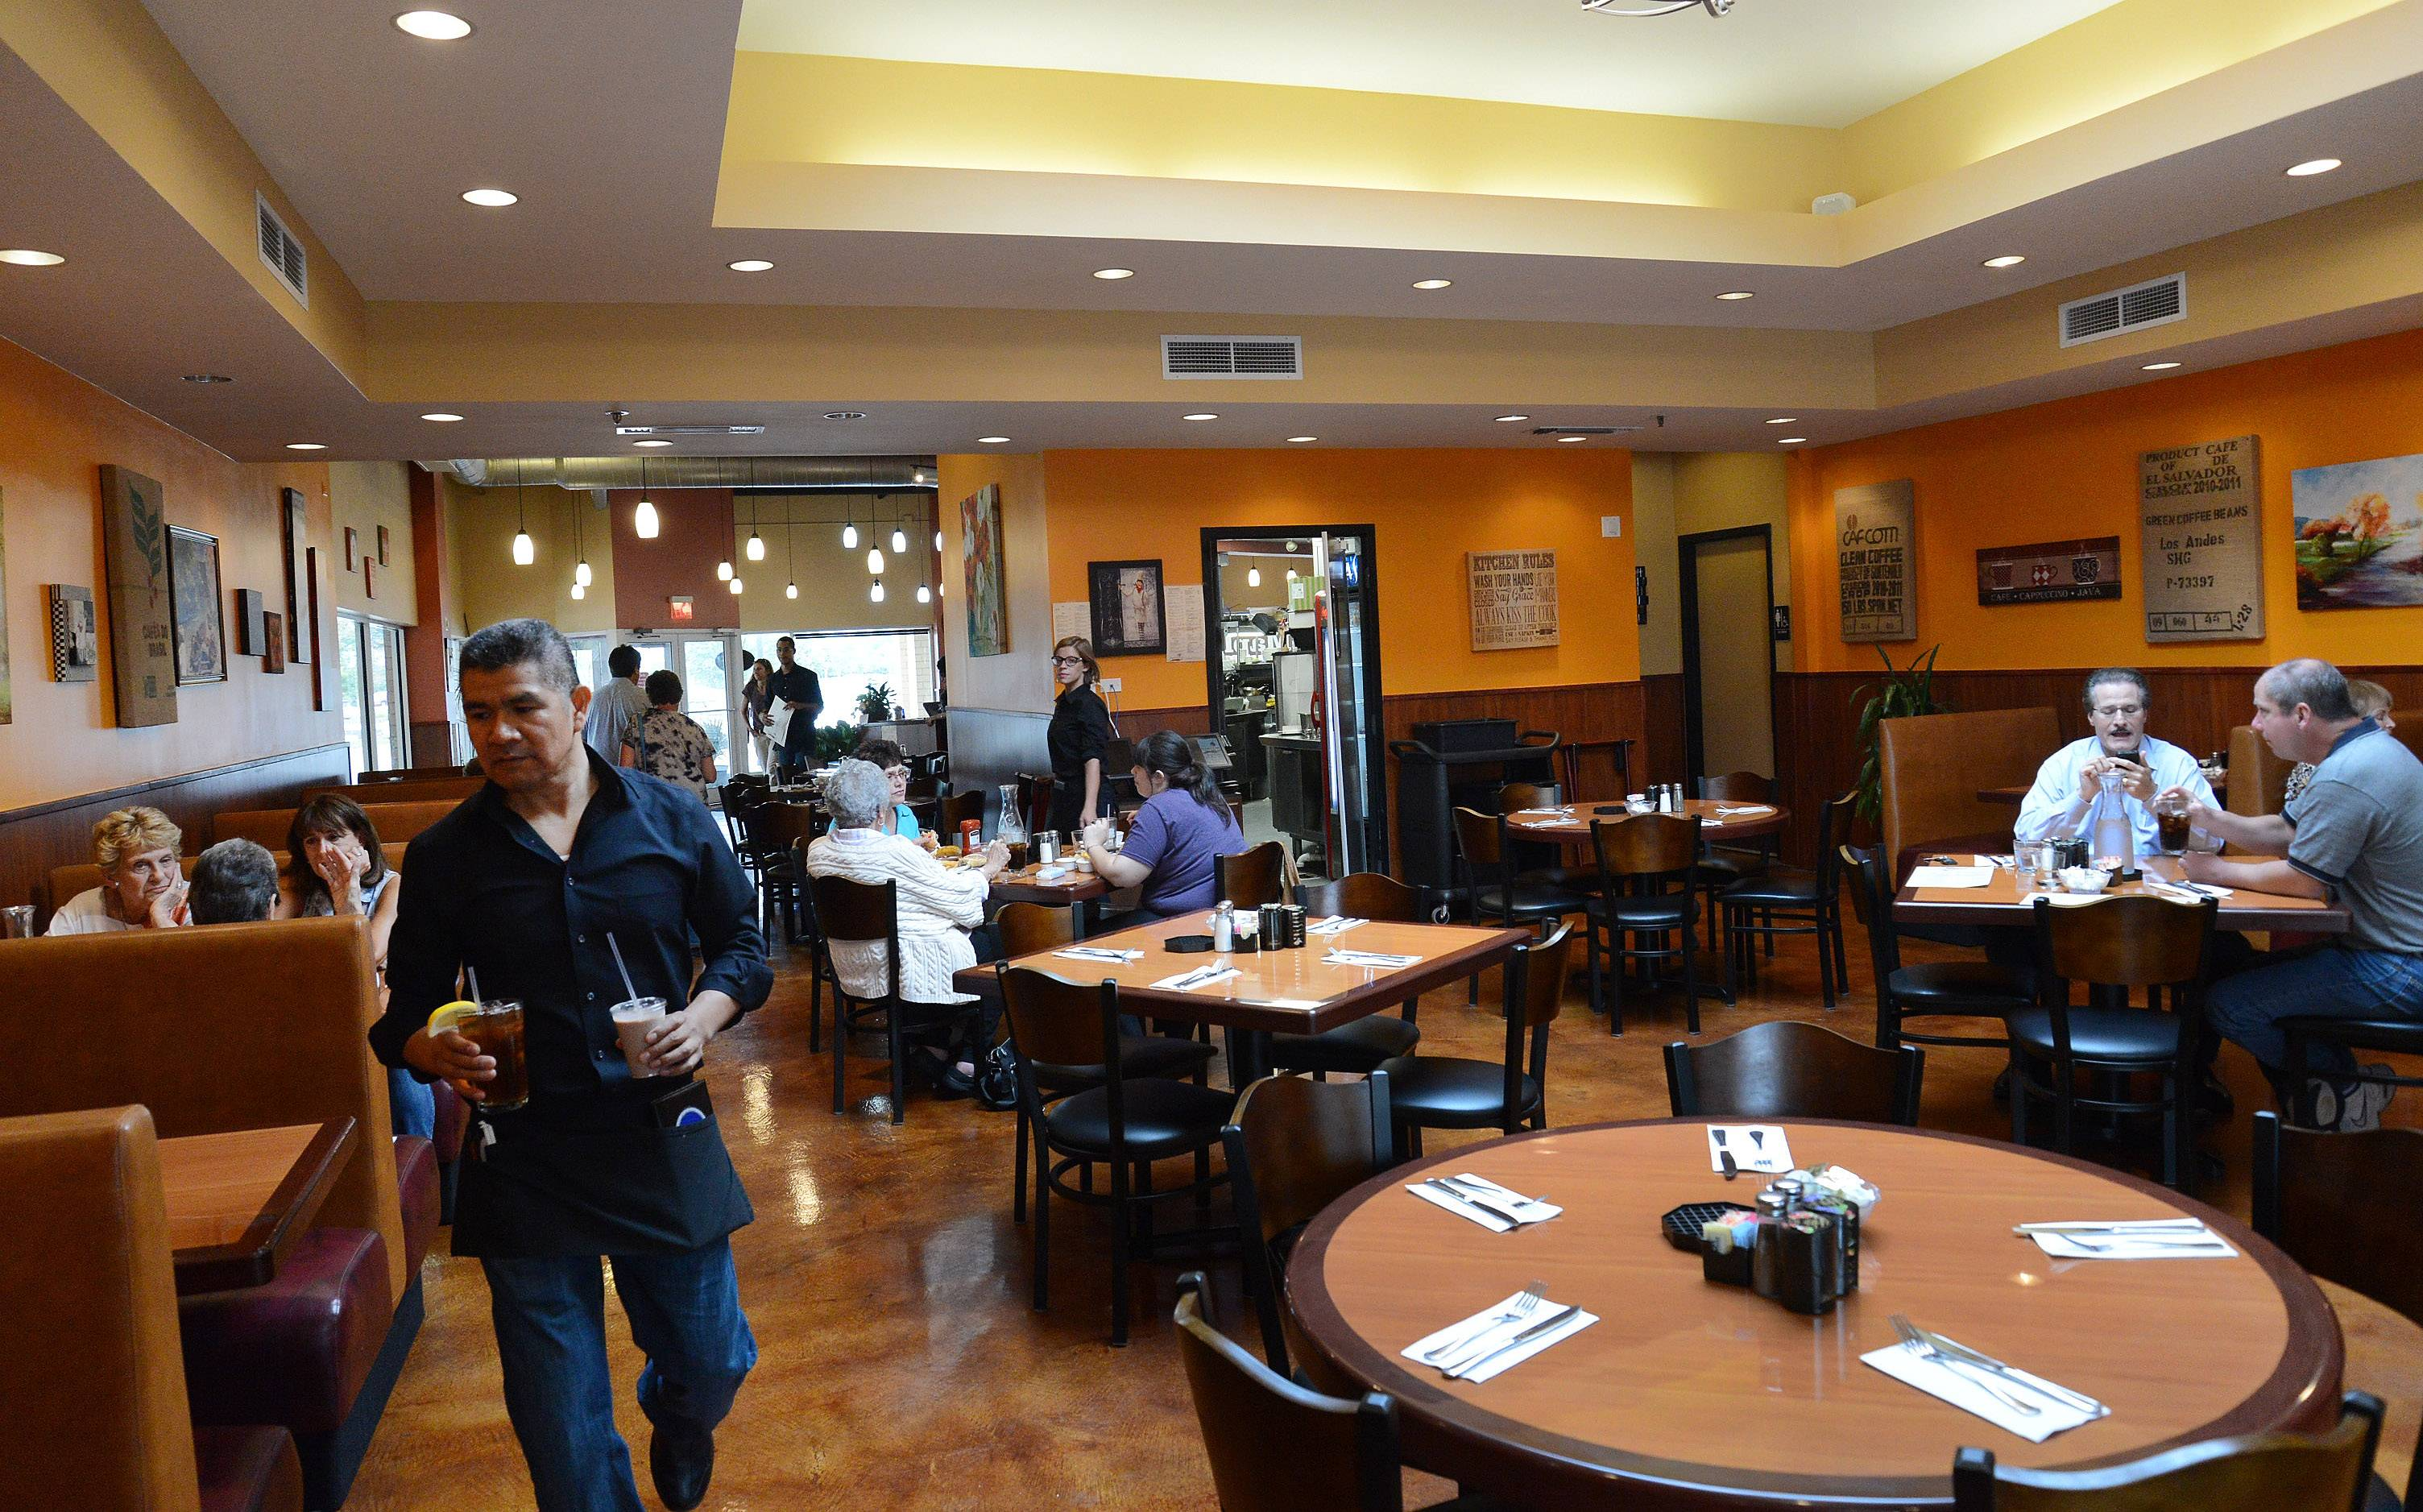 Maple Cafe's bright interior makes for a pleasant atmosphere in which to enjoy brunch.